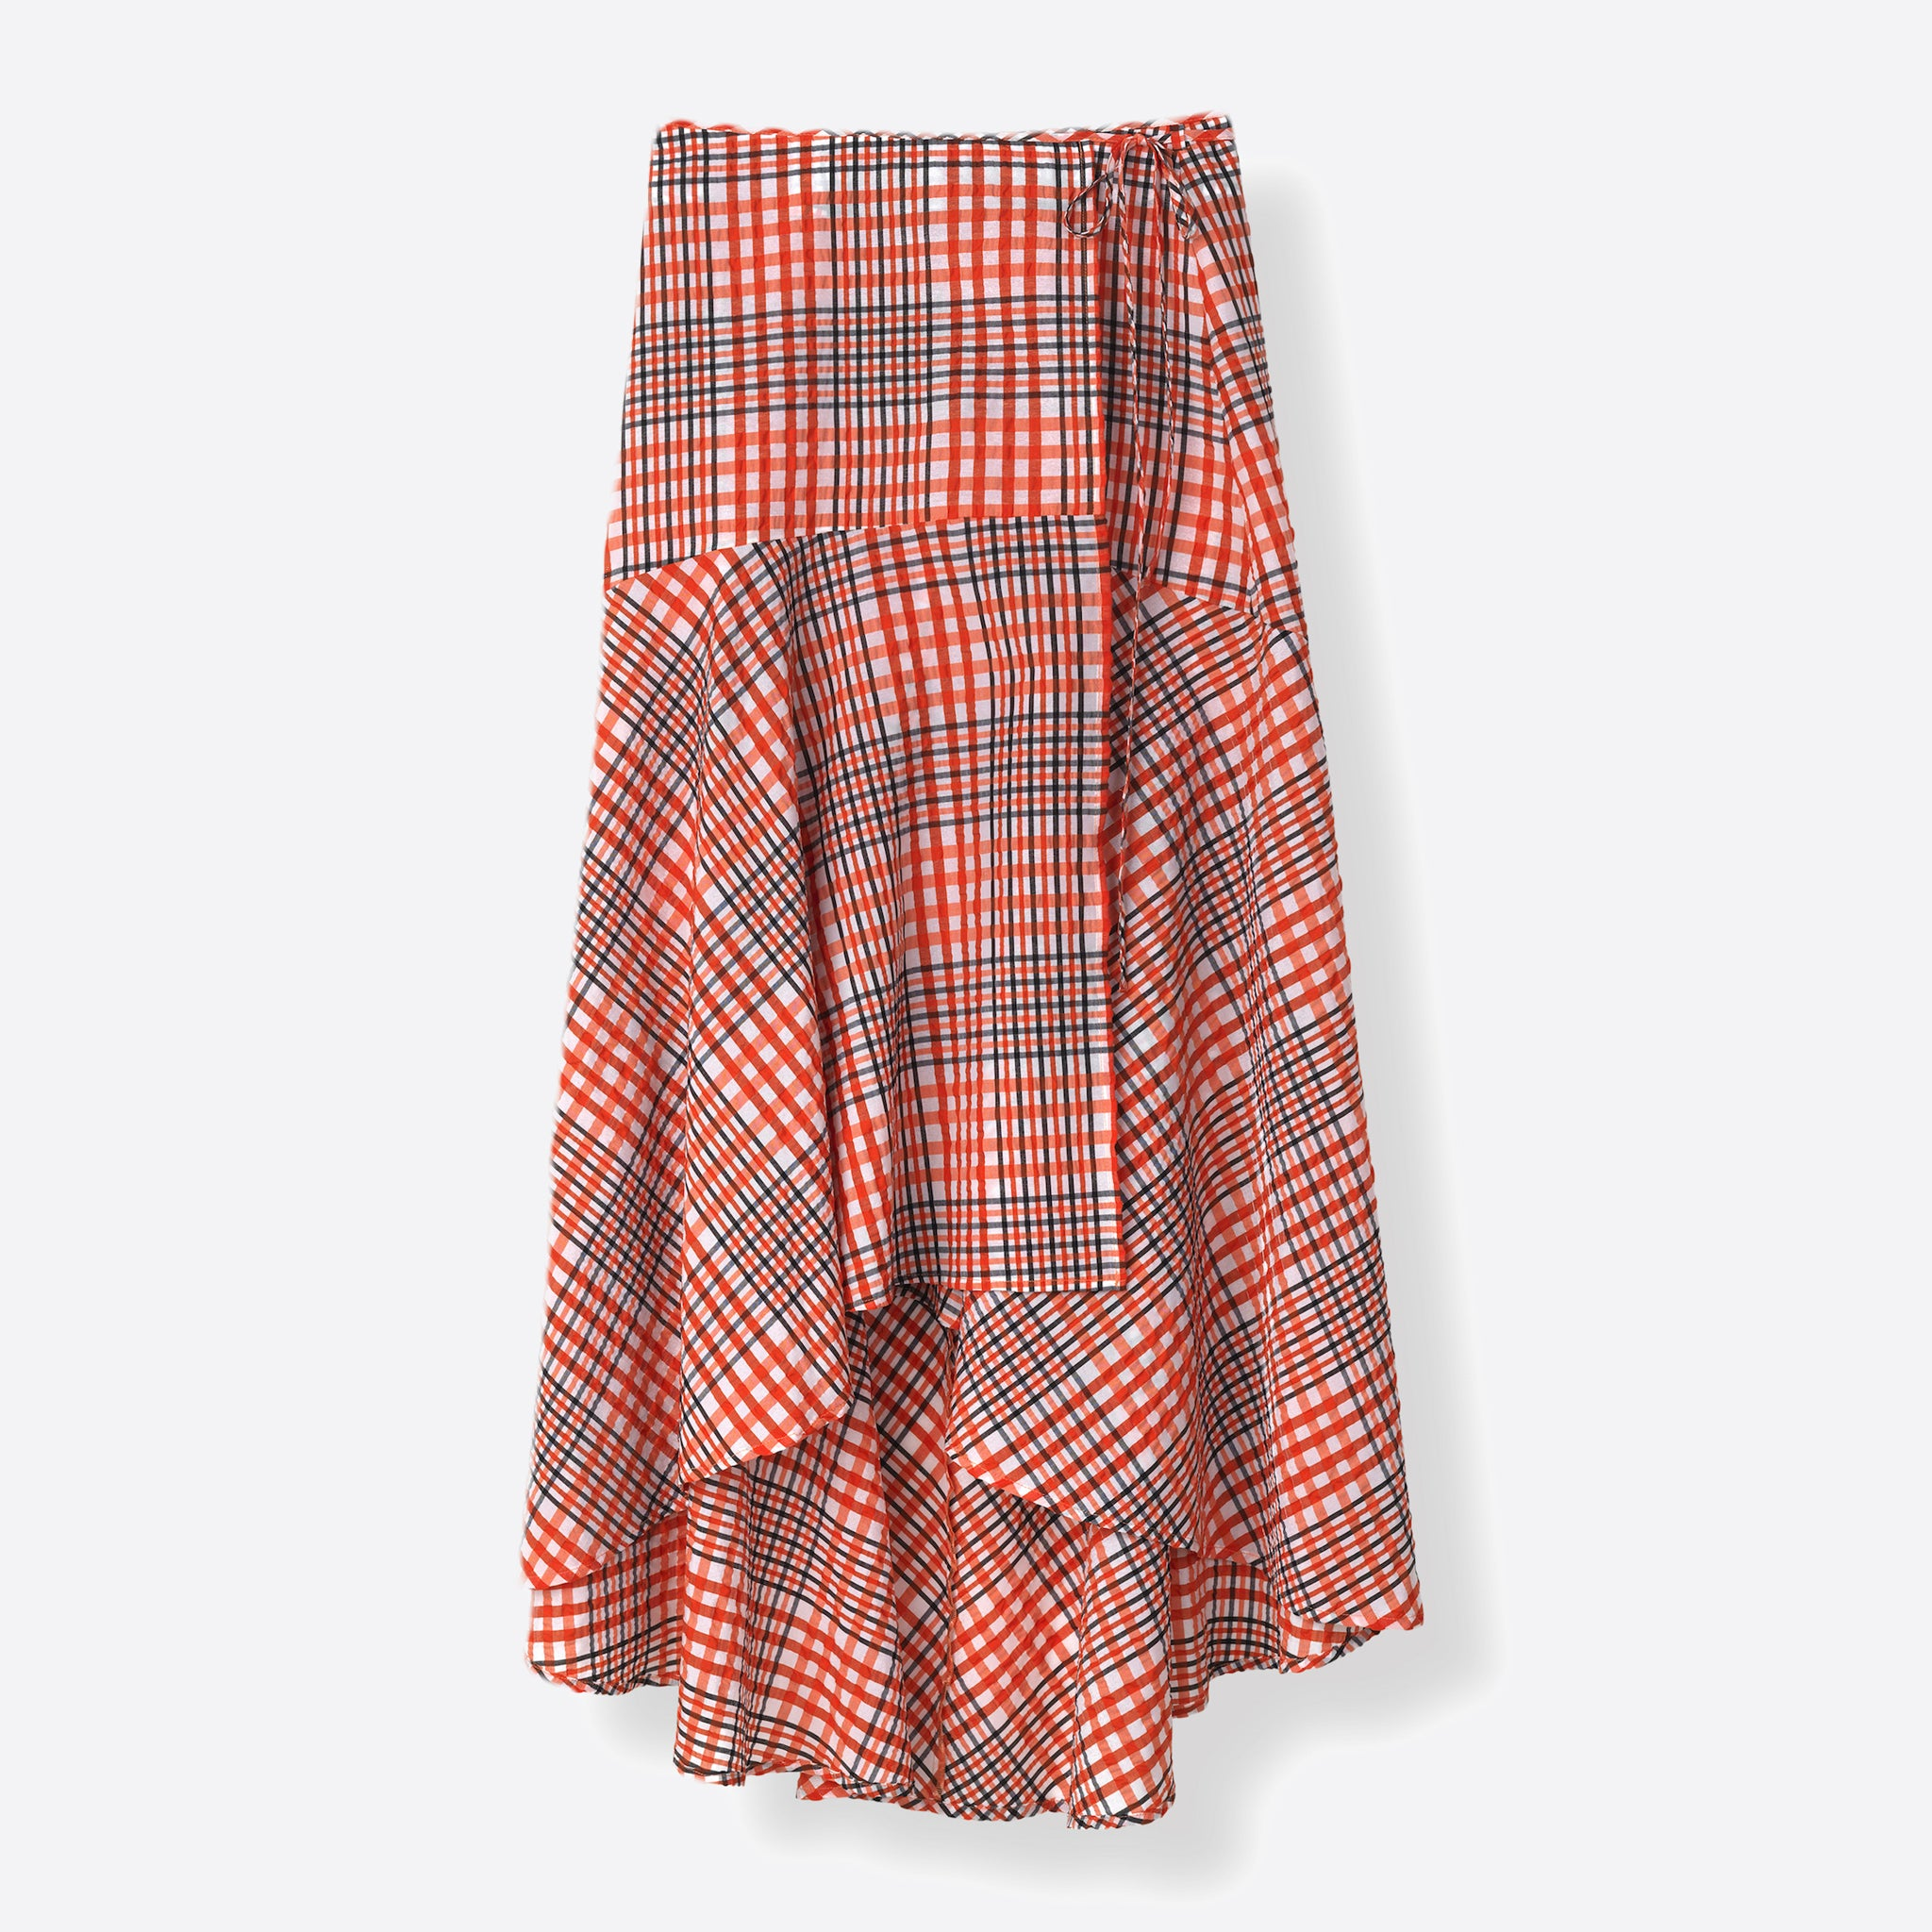 Ganni Charron Wrap Skirt in Big Apple Red